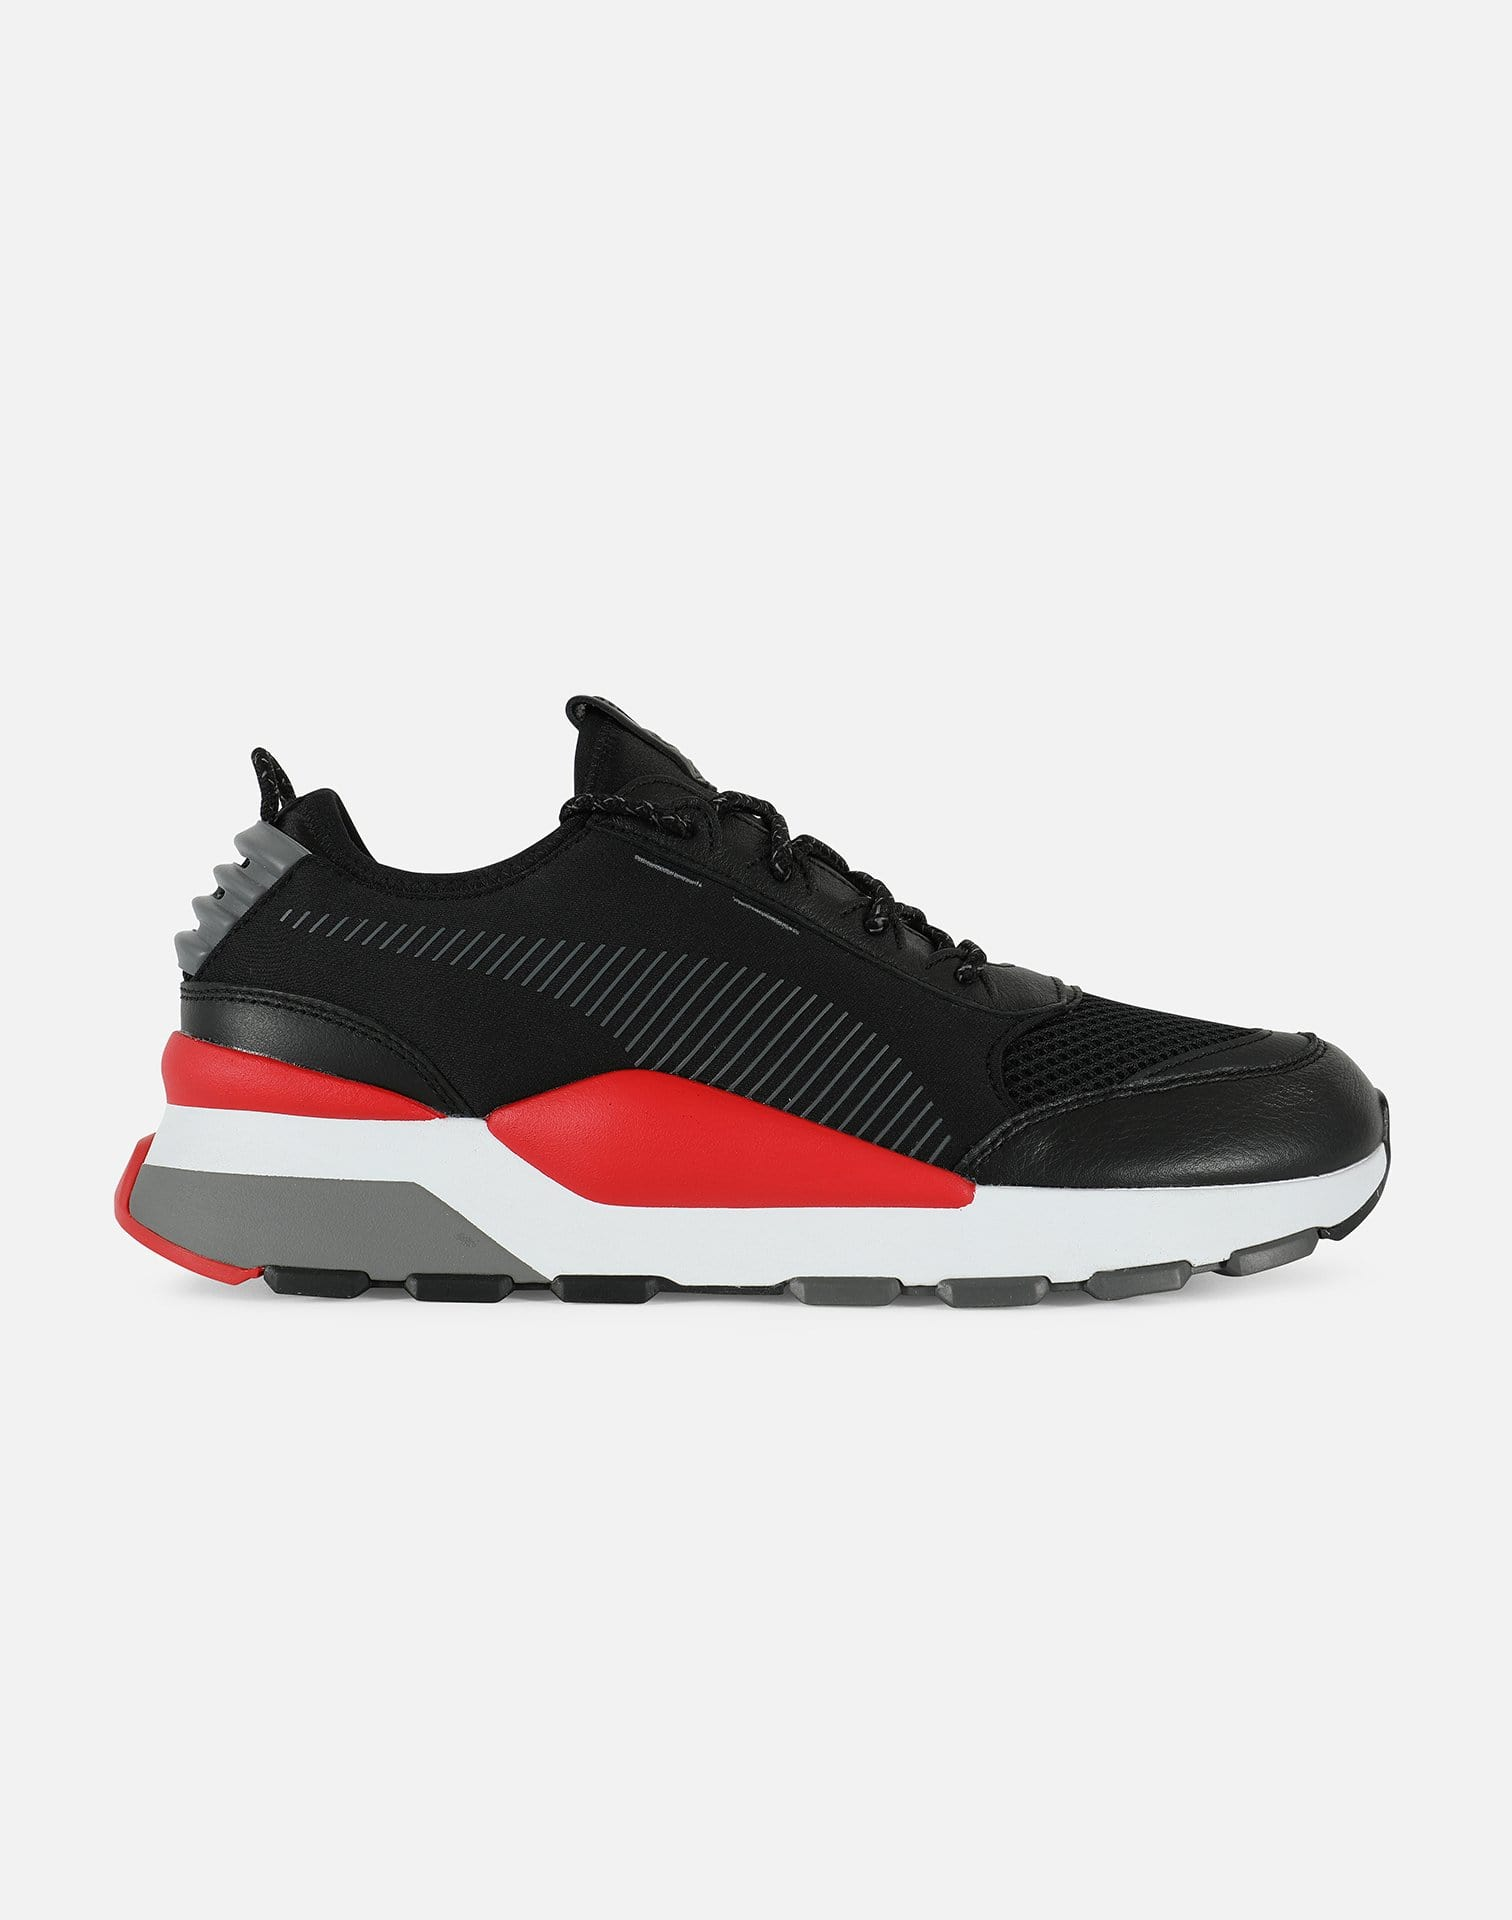 PUMA Men's RS-0 'Play'